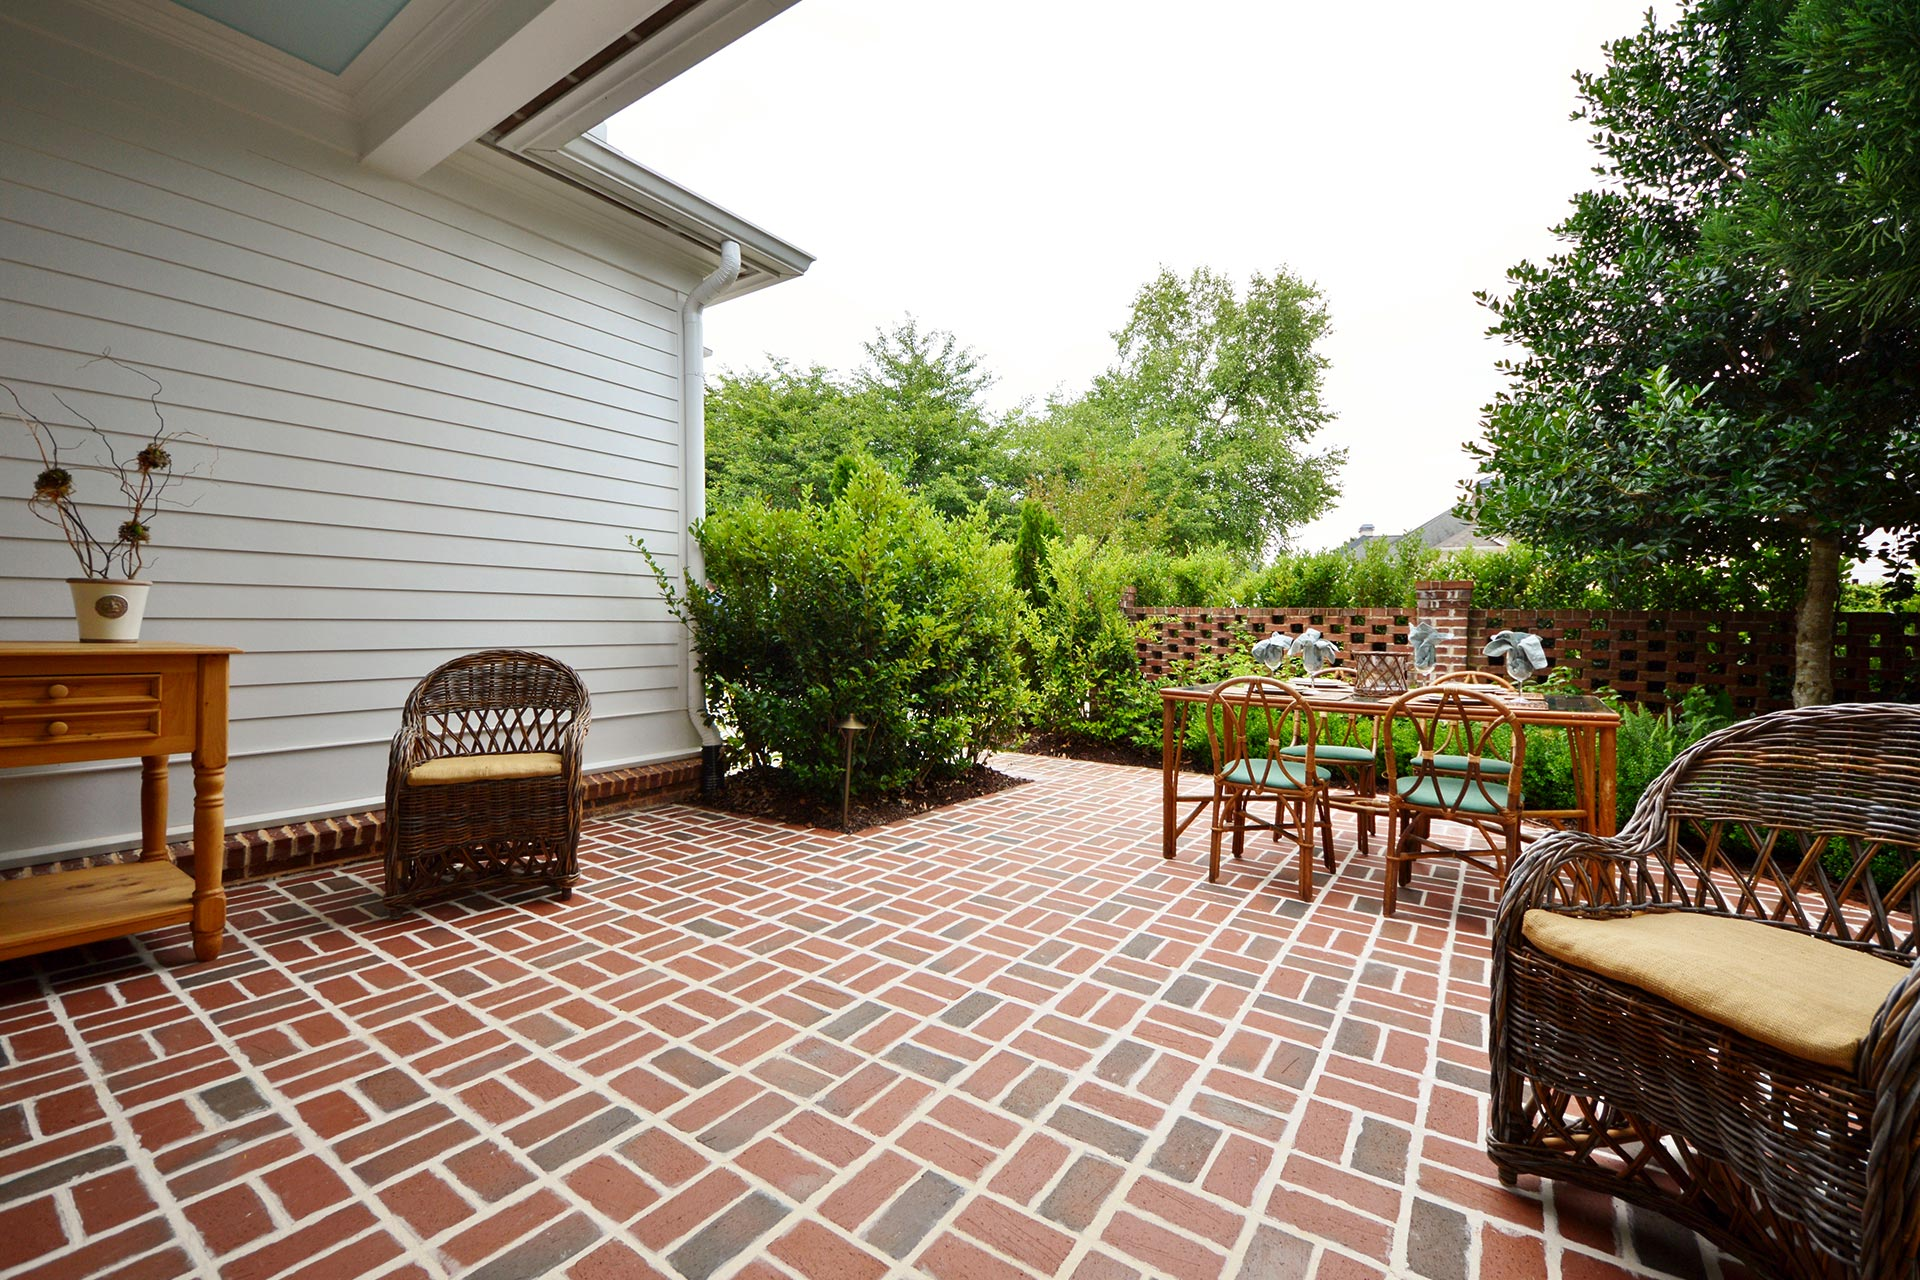 Outdoor Dining Paver Patio